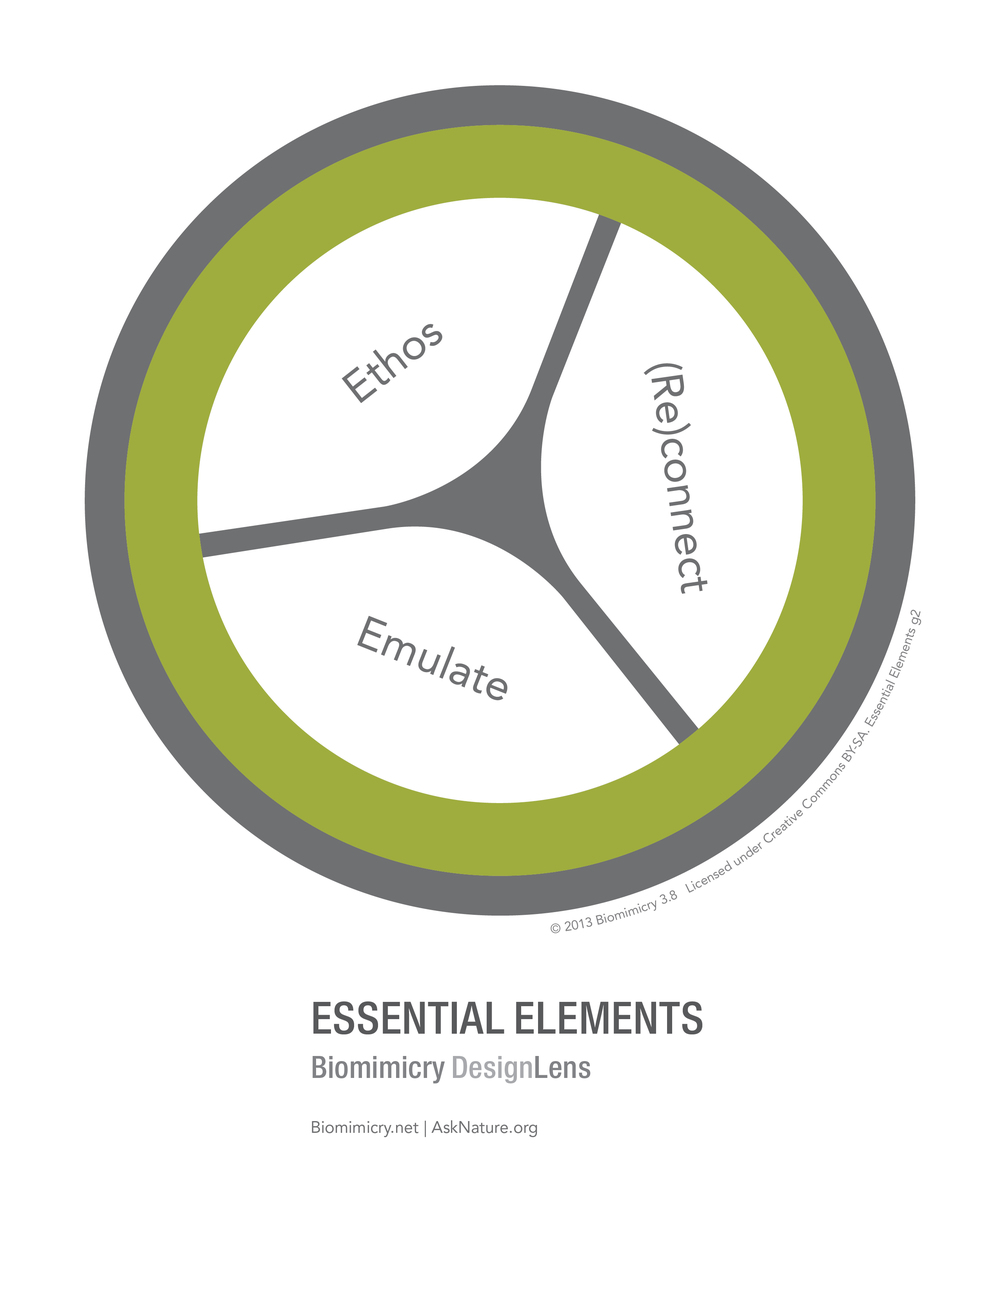 Biomimicry38_DesignLens_Essential_Elements_WEB.jpg